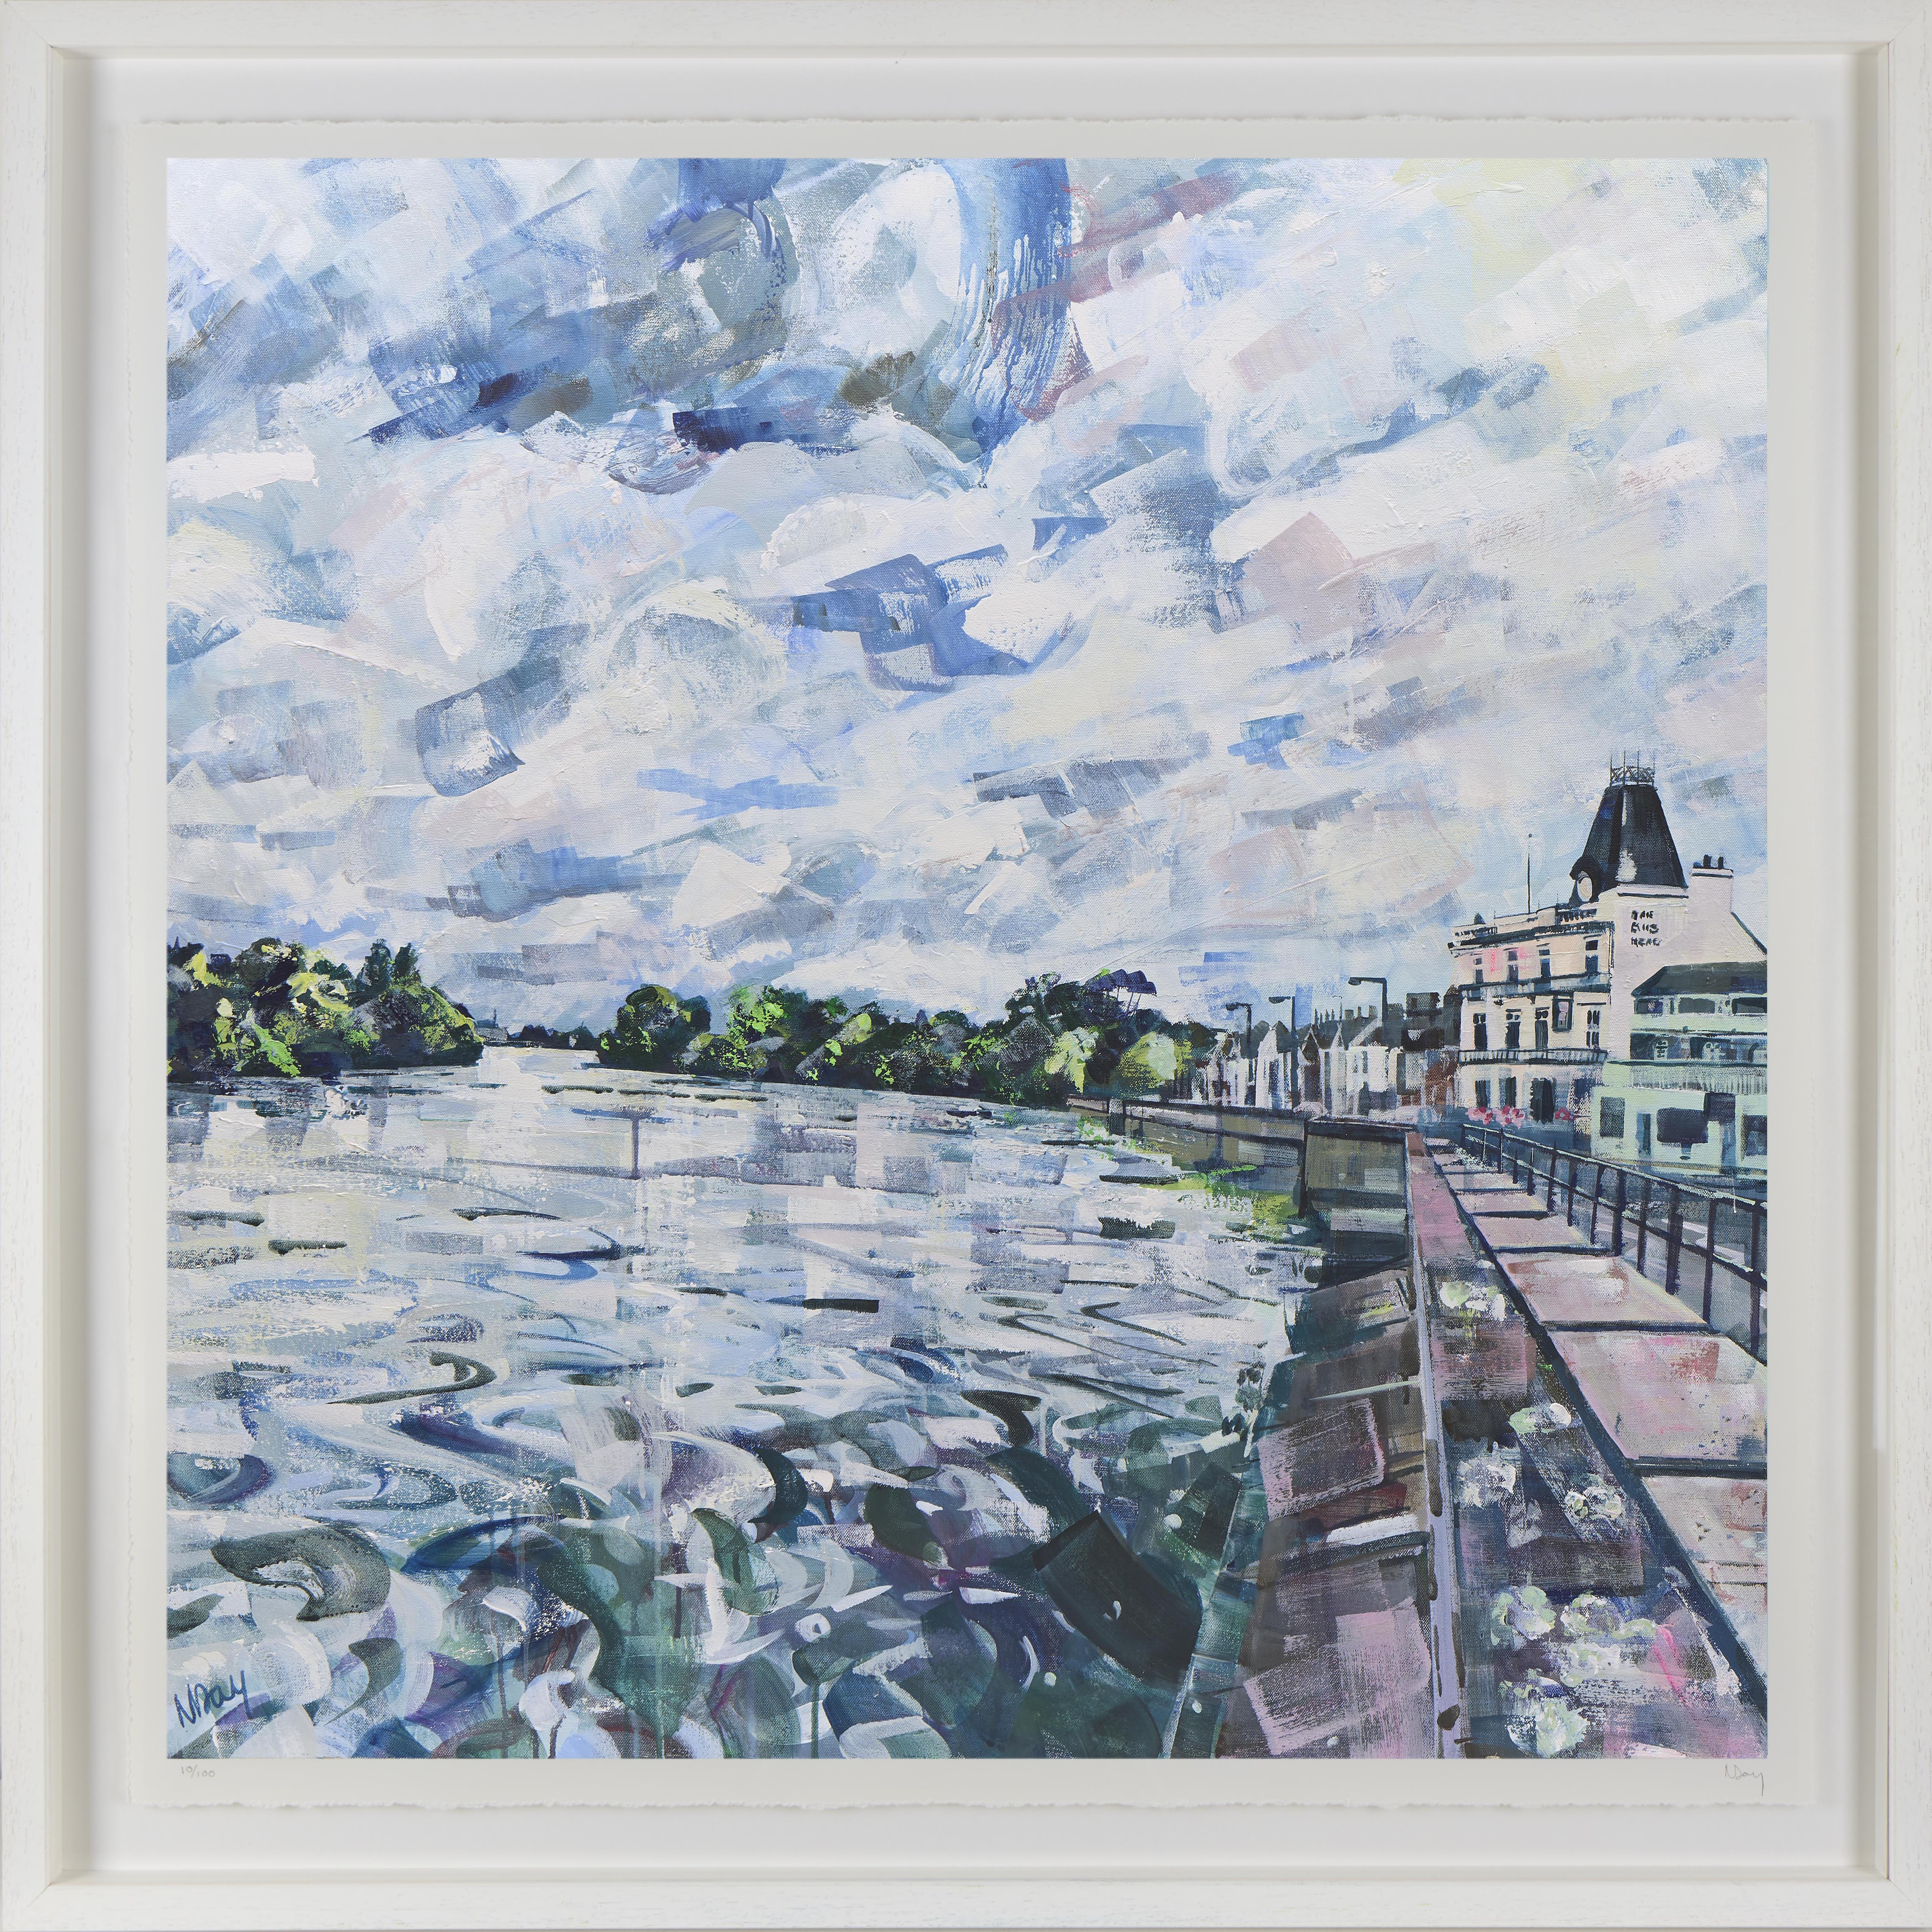 Print of Barnes Towpath 80x80cm by Nadia Day at Riverside Gallery Barnes